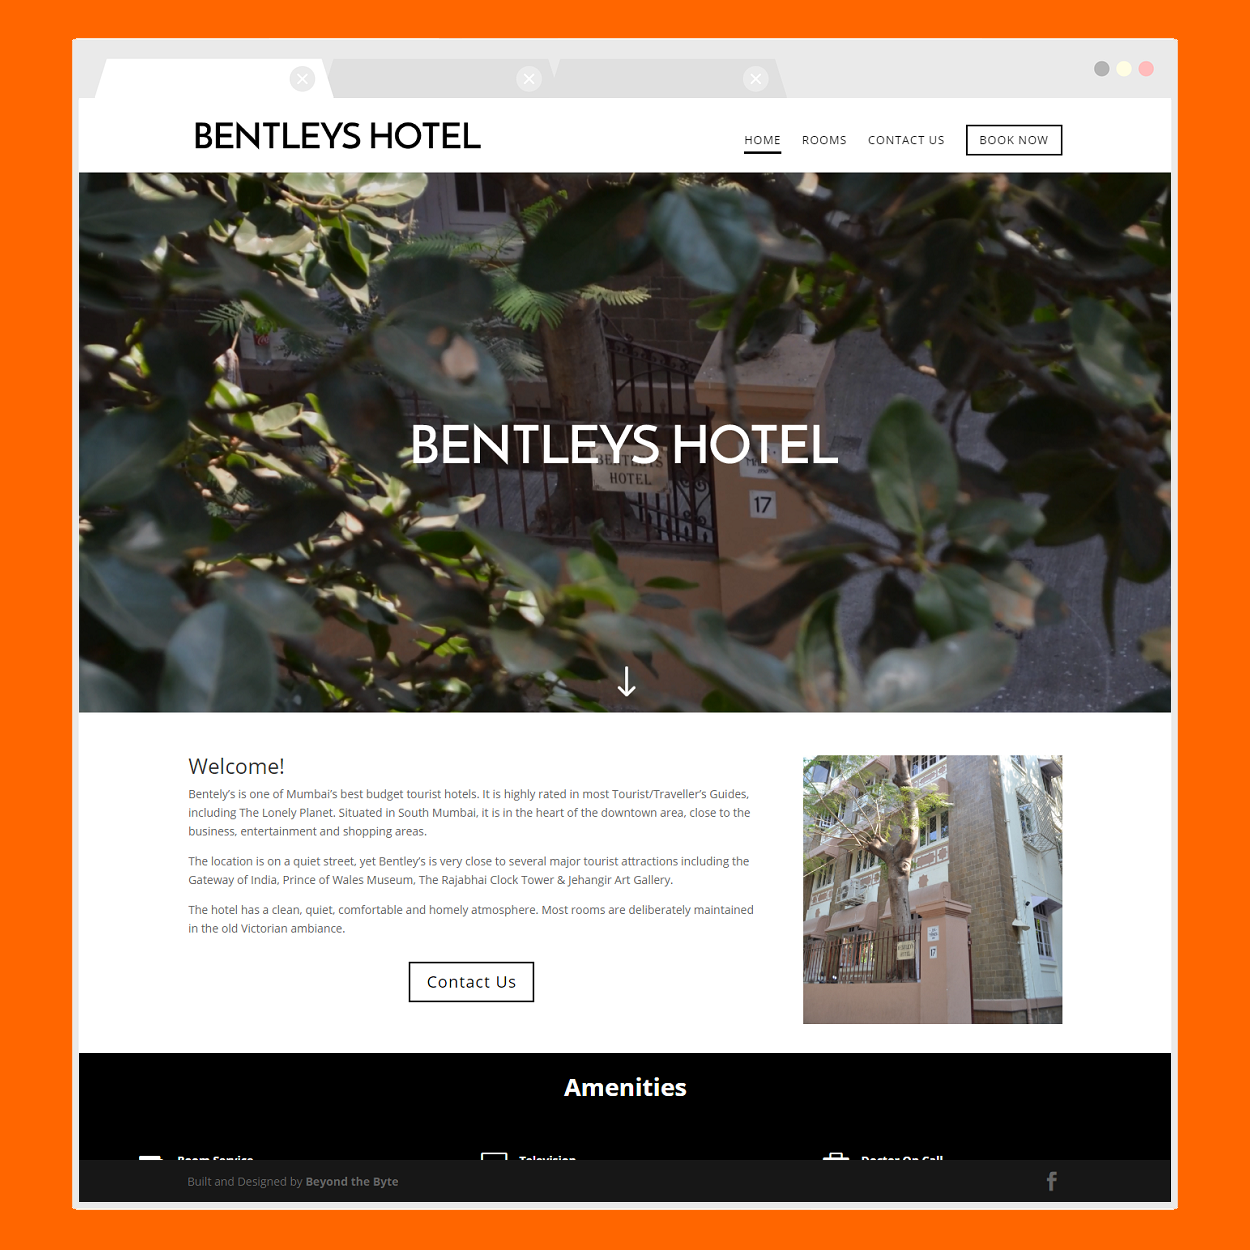 Bentley's Hotel (Home Page)